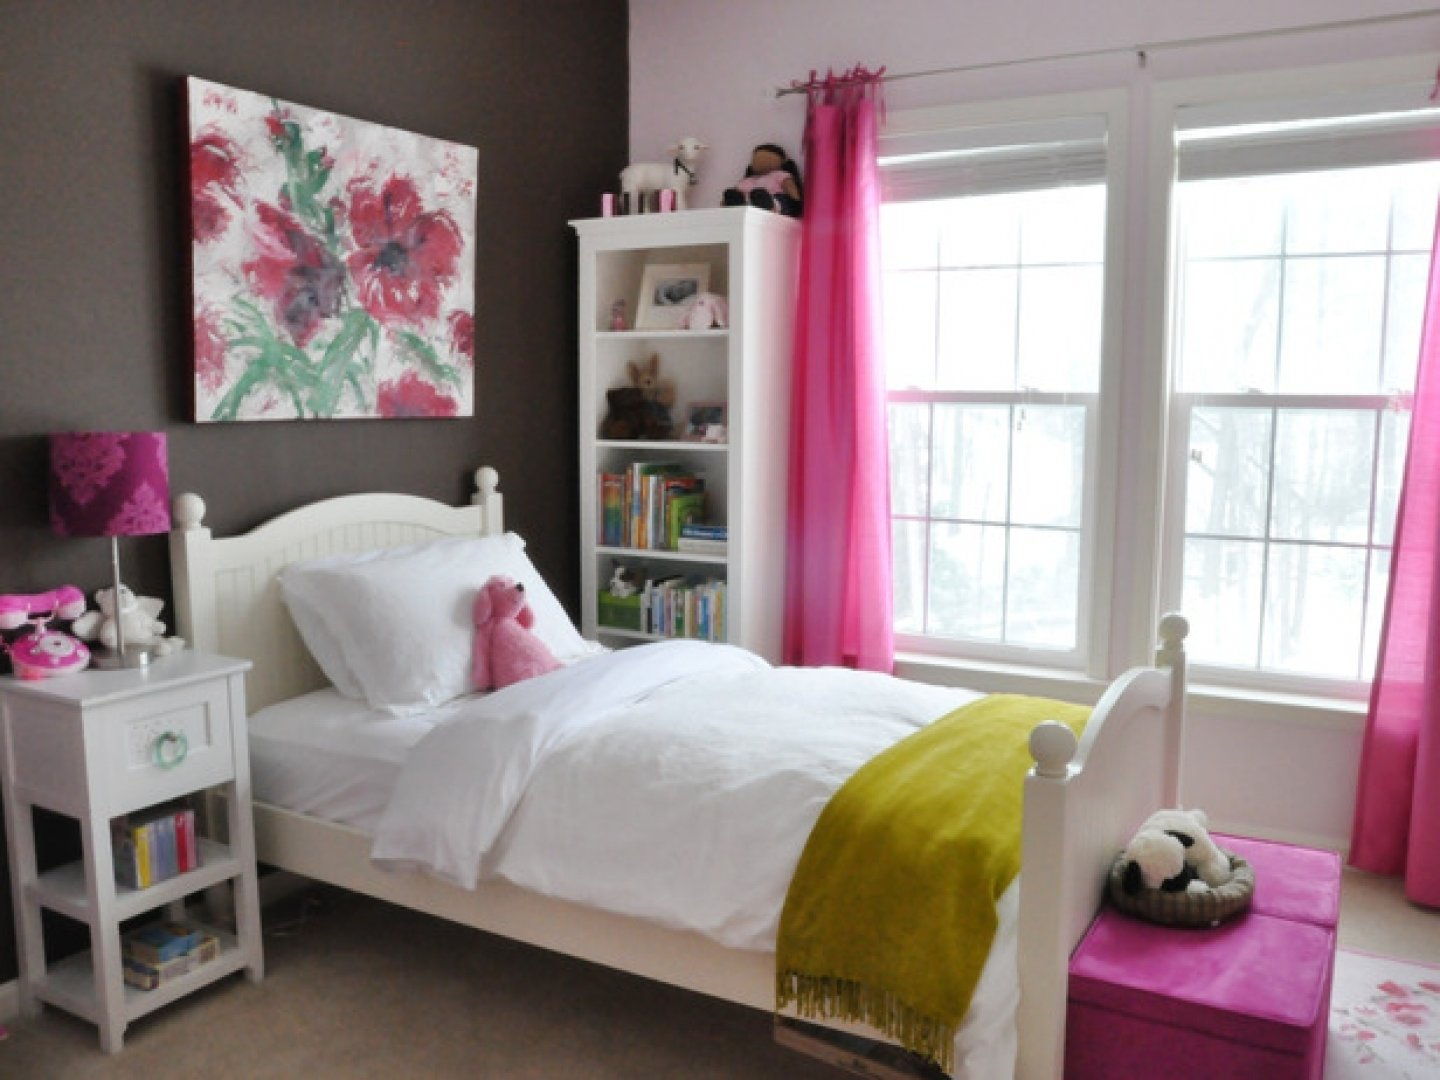 10 Nice Bedroom Decorating Ideas For Teenage Girls girl teen bedroom decorating ideas decobizz 2021